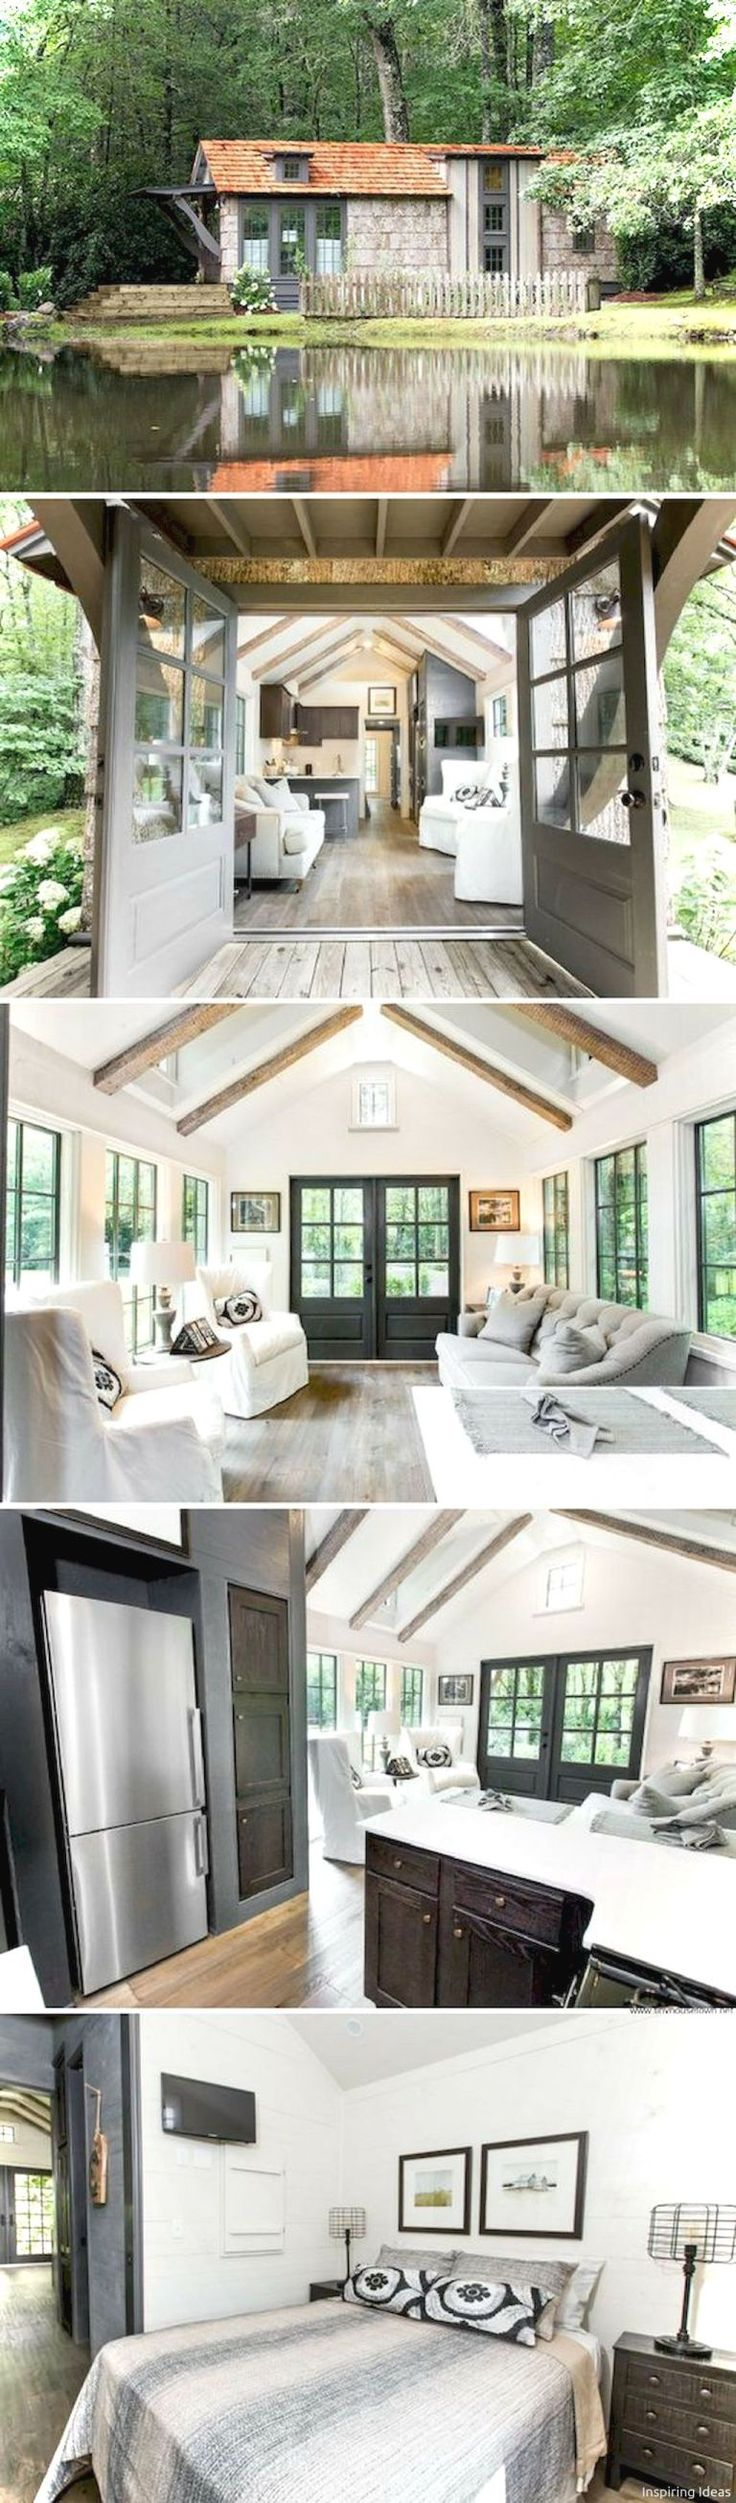 602 best Small House Design images on Pinterest | Small homes, Small ...